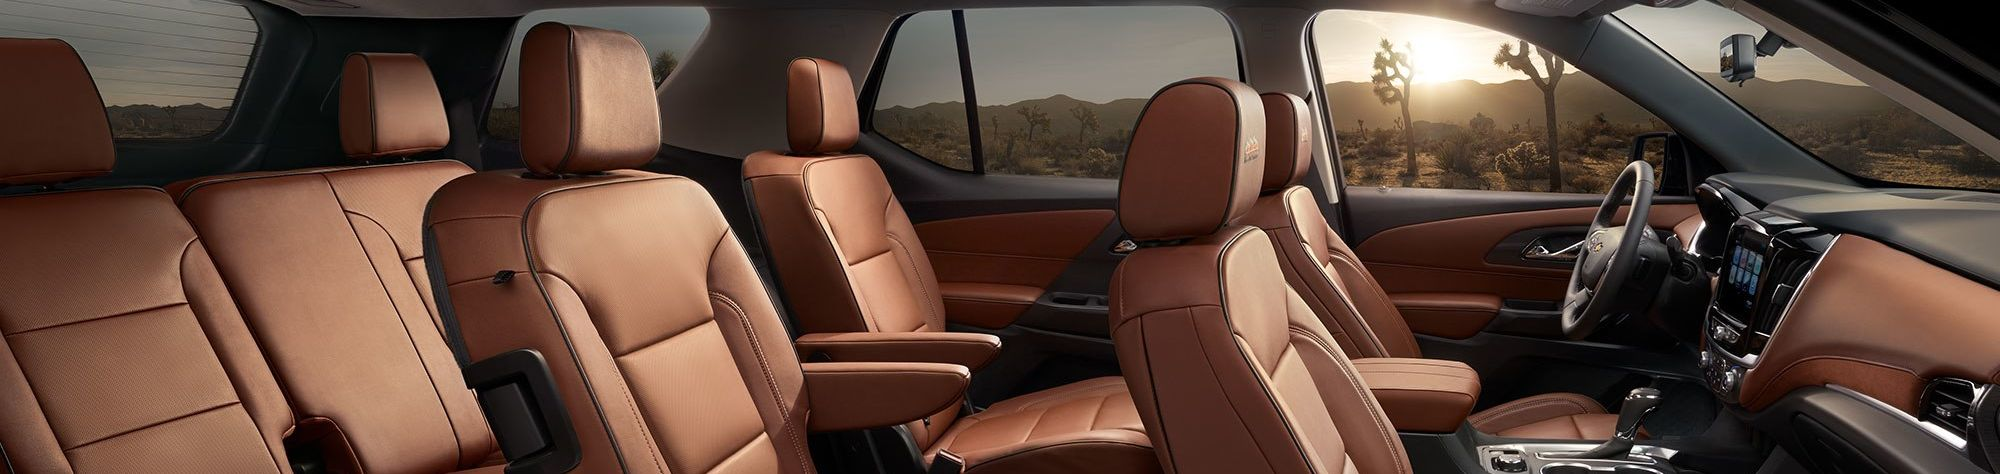 2019 Chevrolet Traverse Seating Room